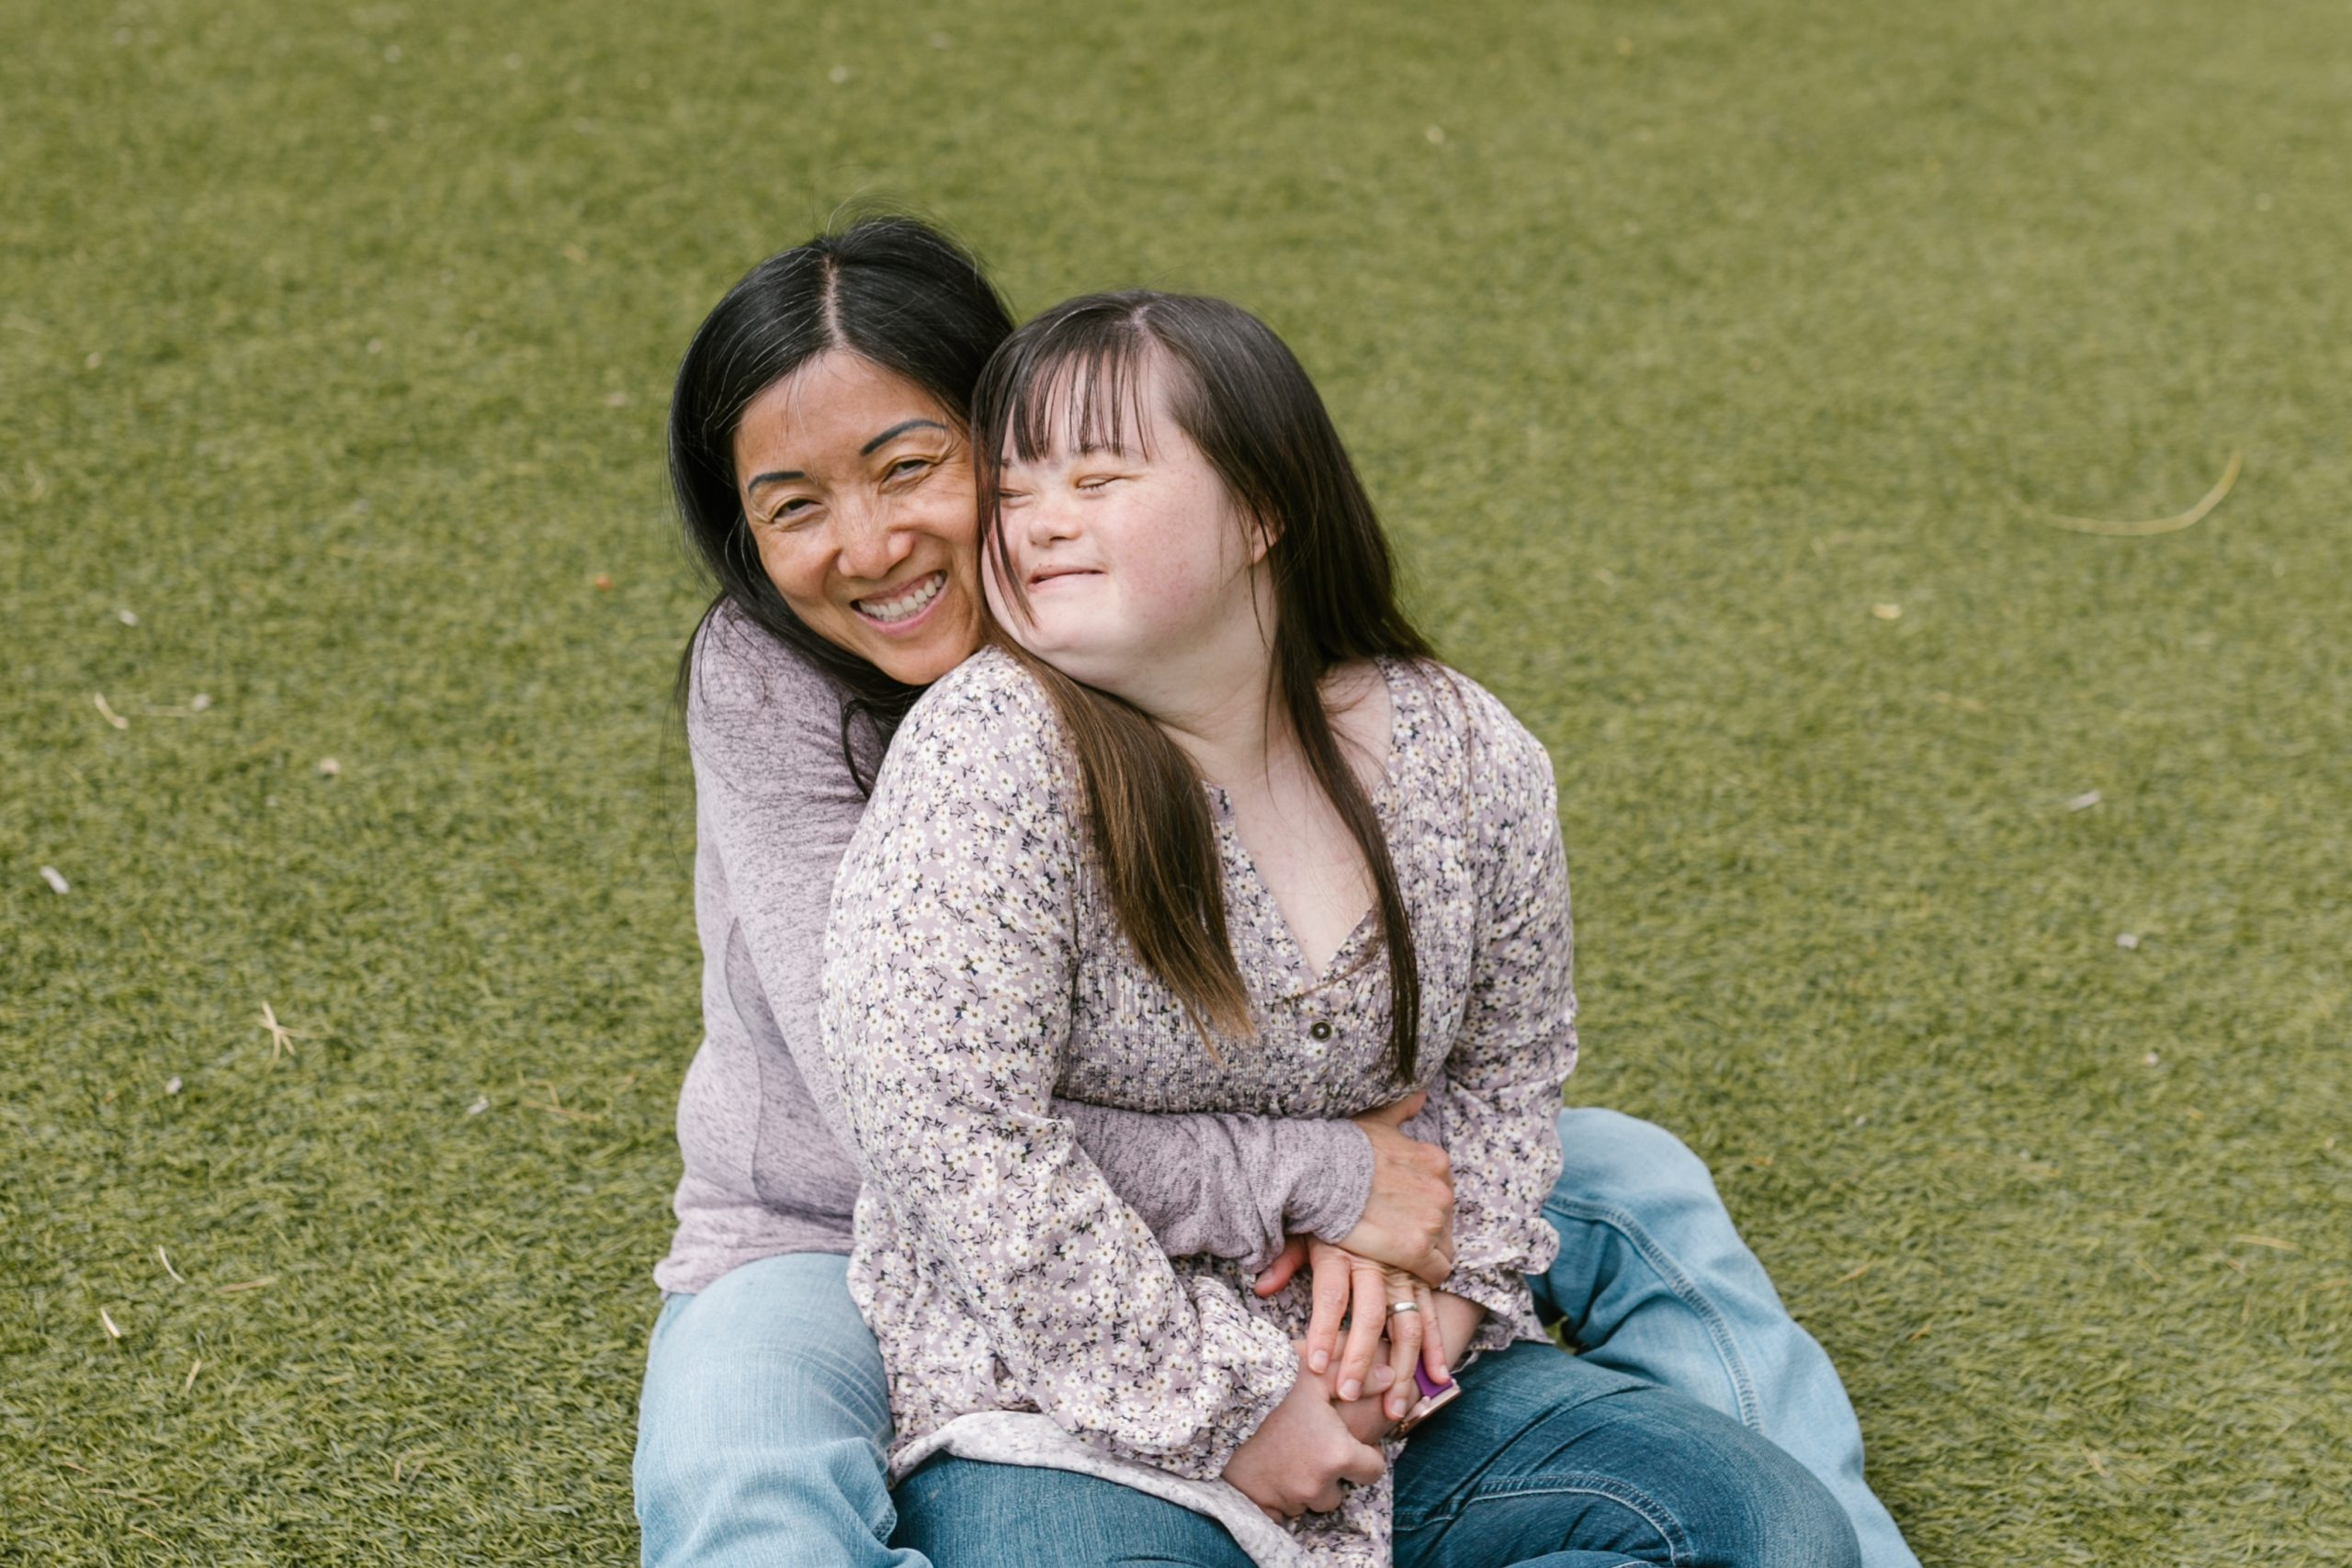 A woman with down syndrome sits on the grass wearing a long-sleeved top and jeans while a friend hugs her from behind.